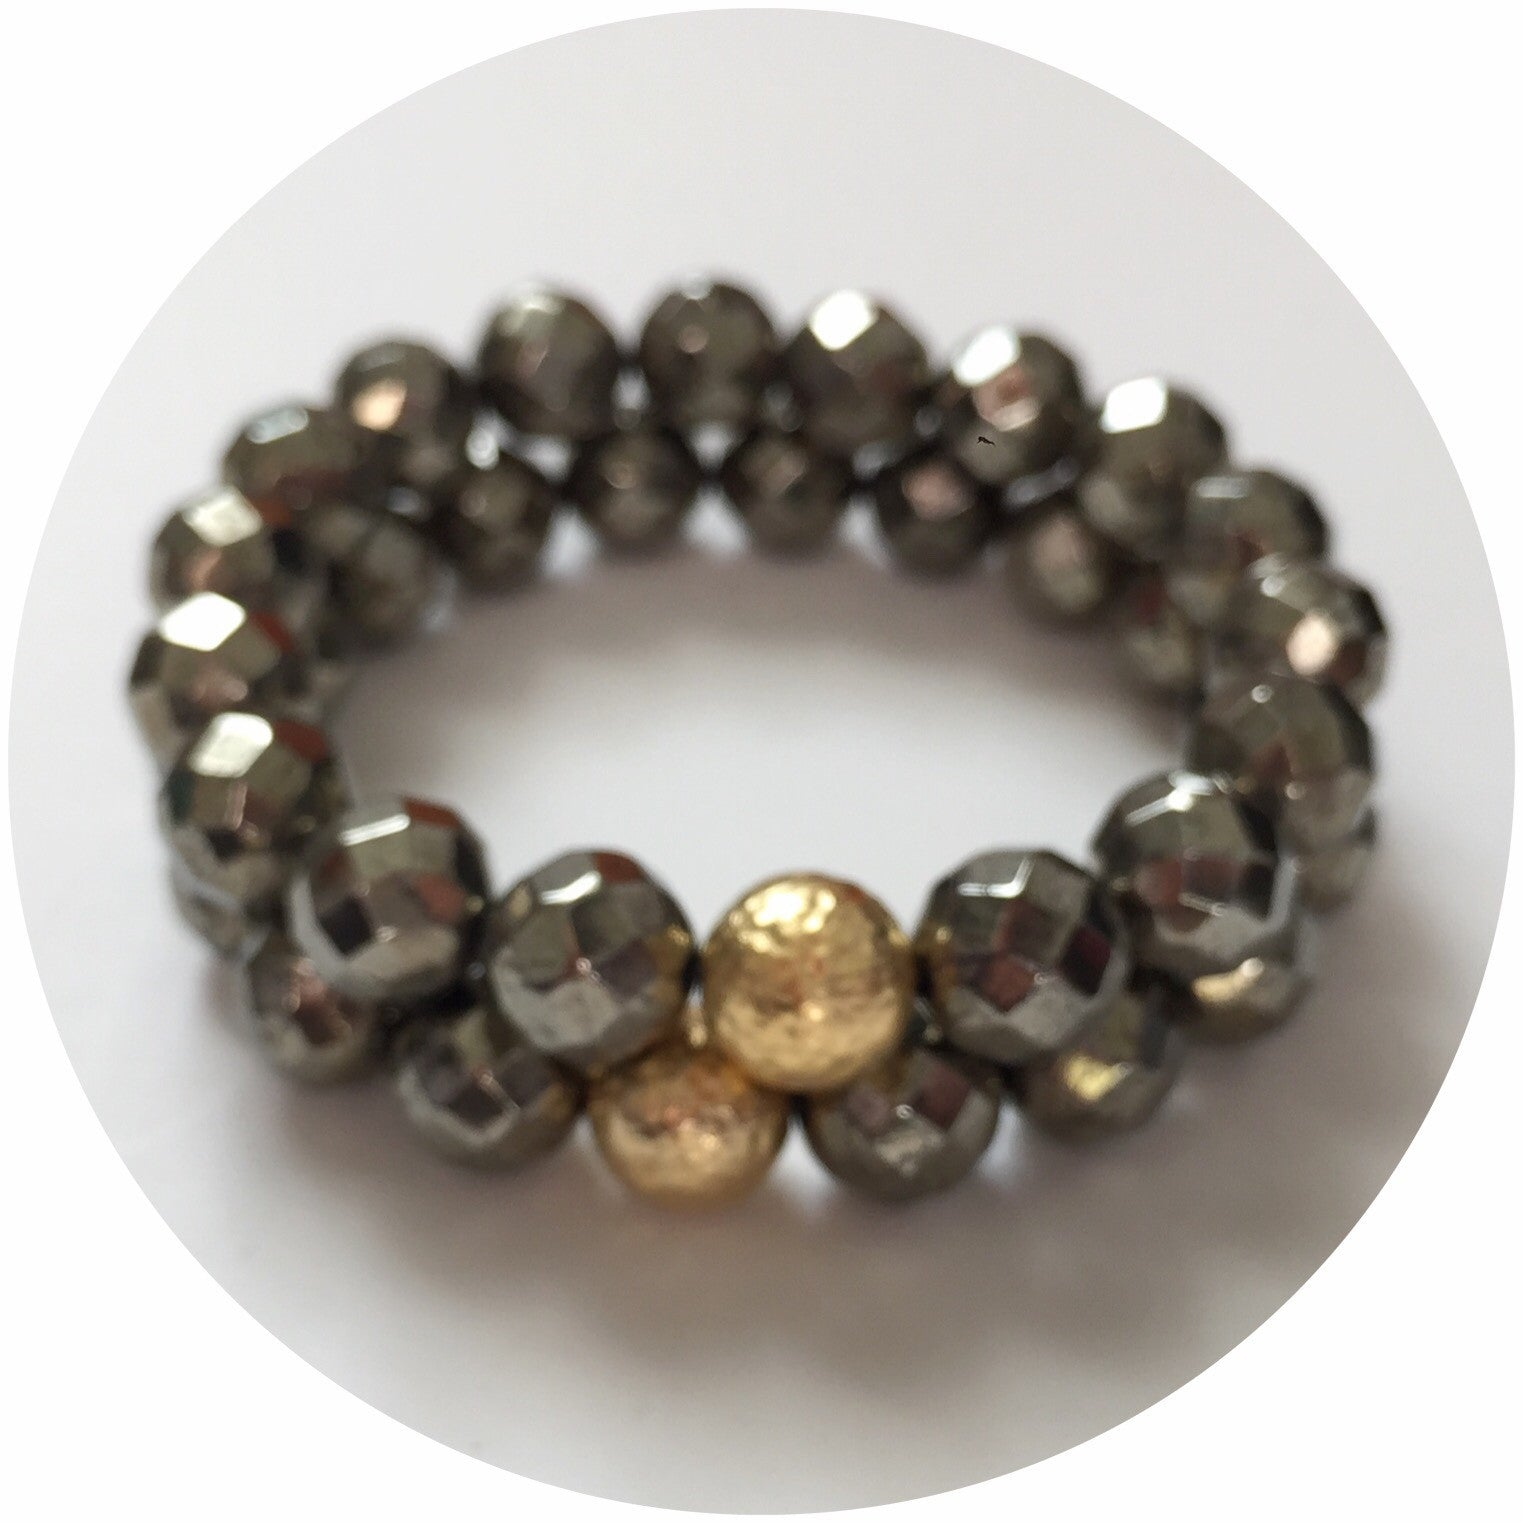 Pyrite with Hammered Gold Accent - Oriana Lamarca LLC